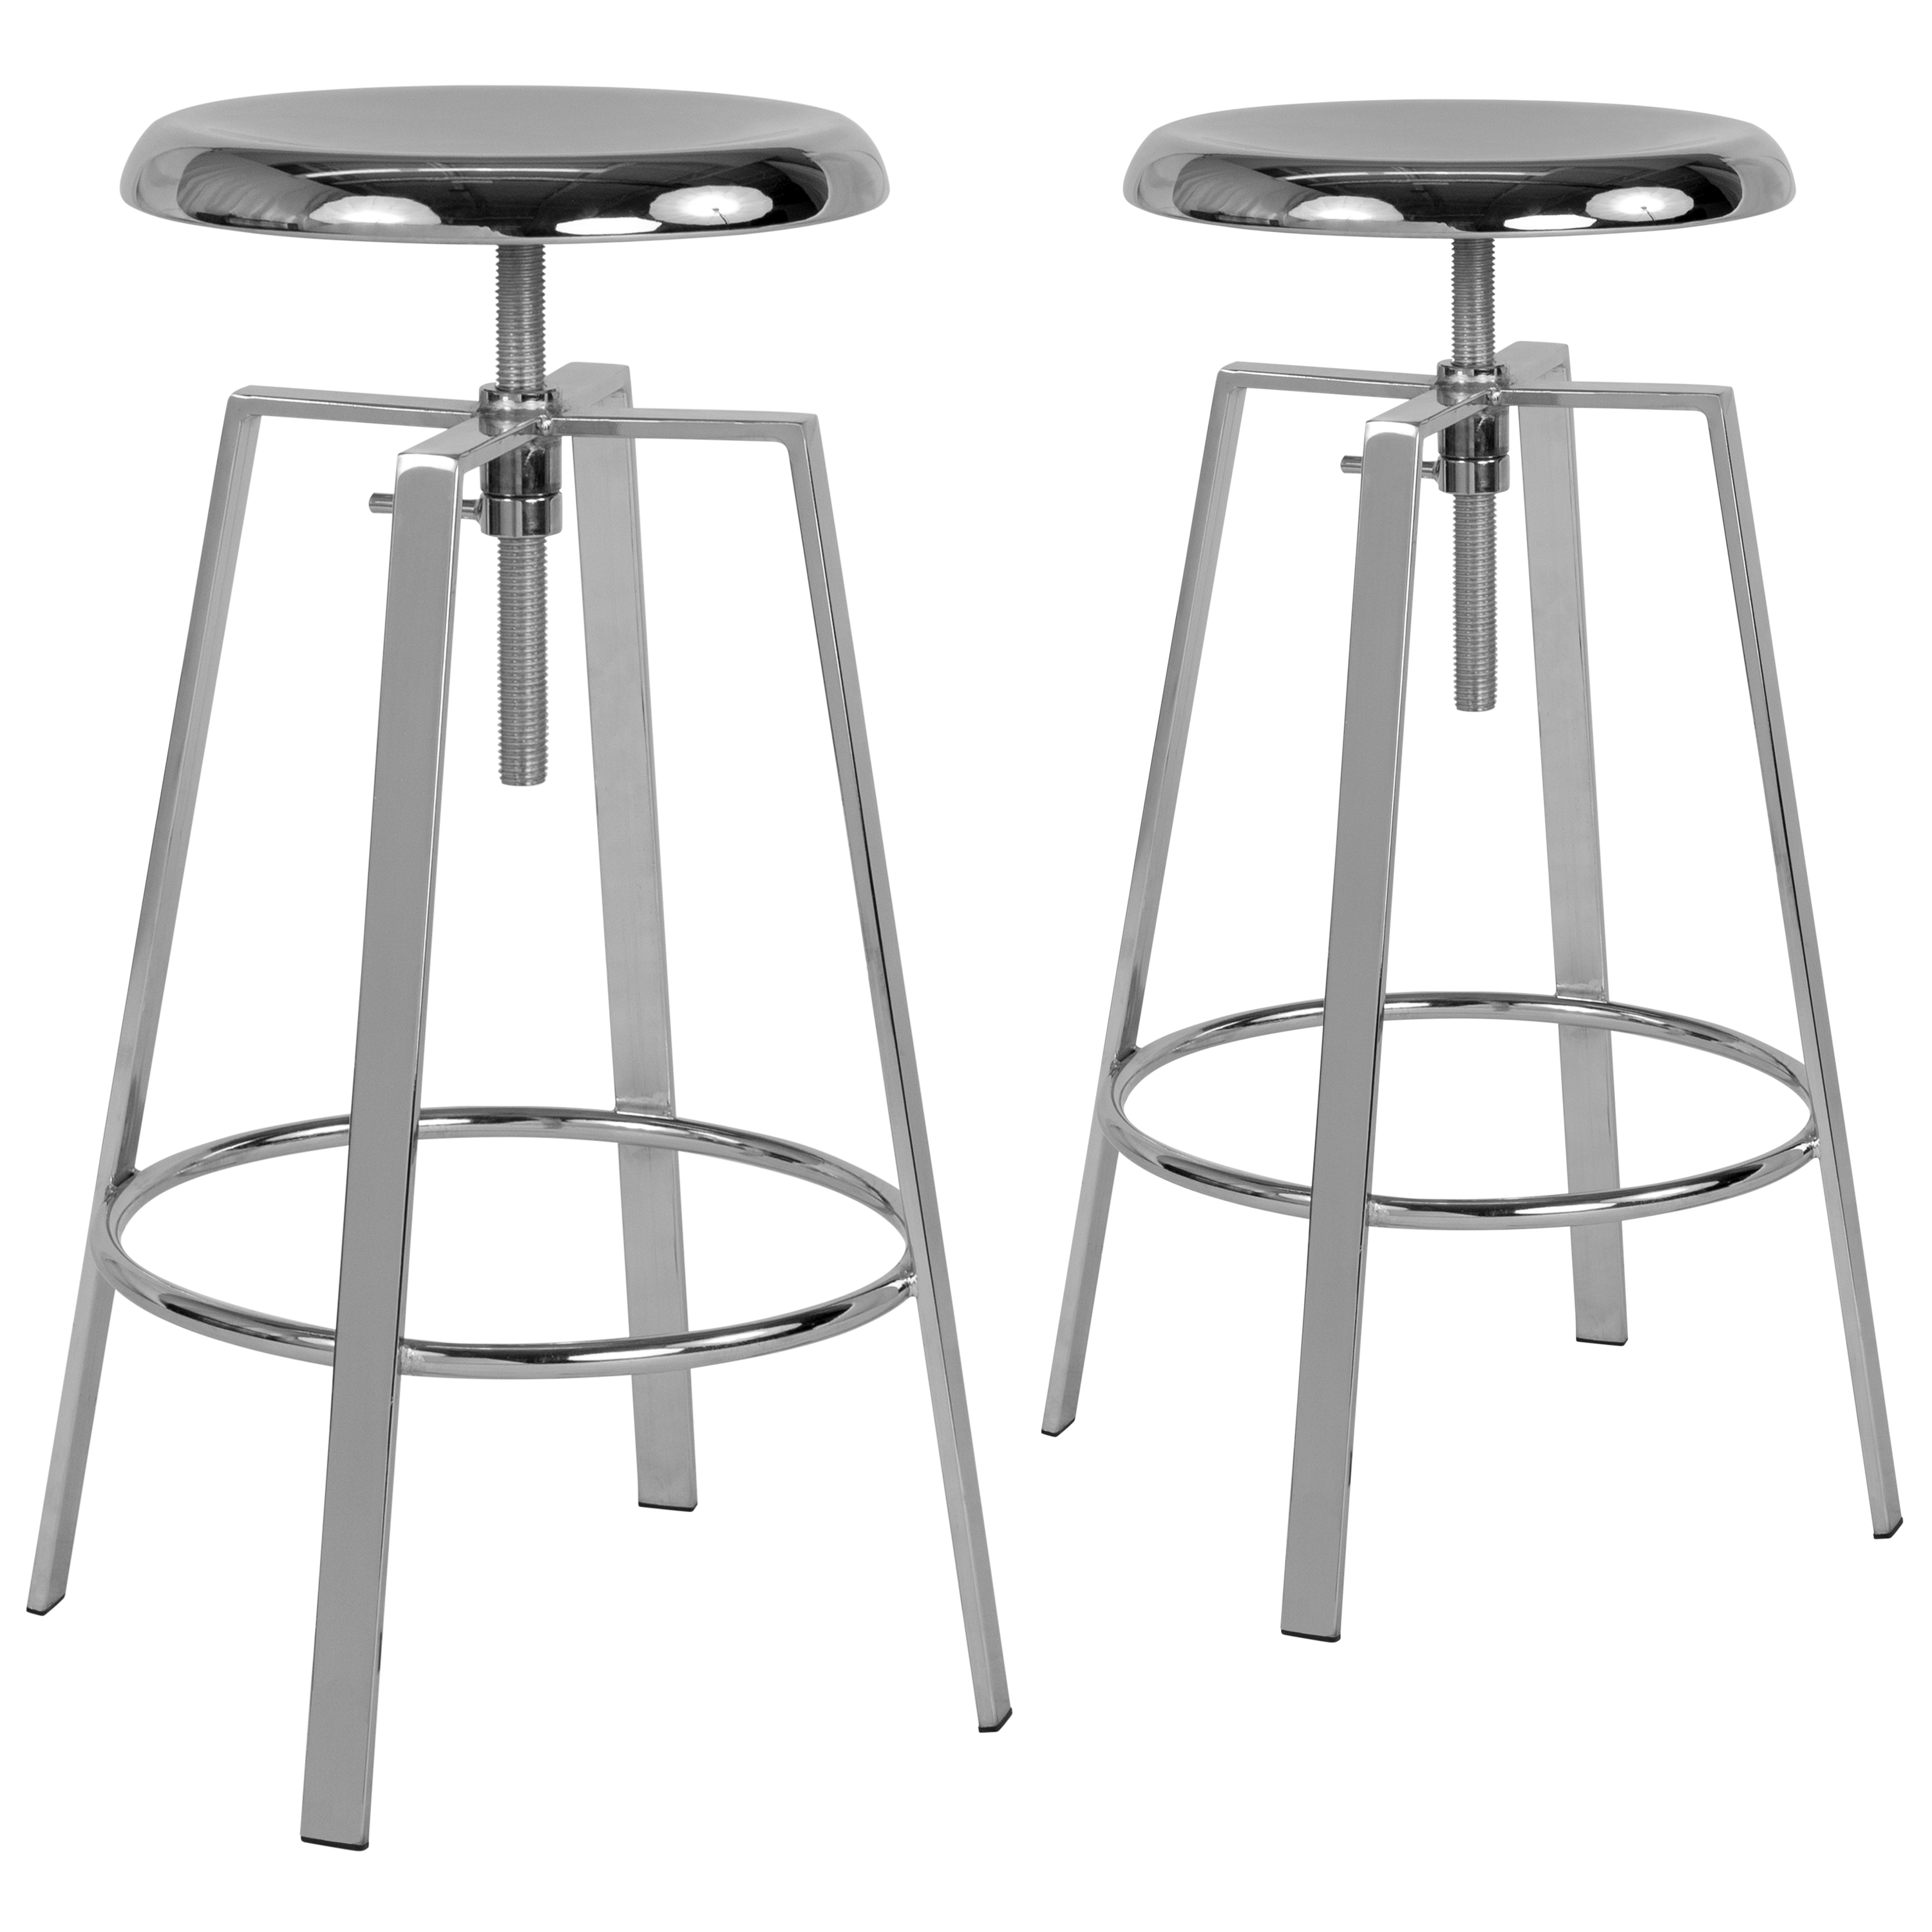 Toledo Flash Furniture 2 Pk. Toledo Industrial Style Barstool with Swivel Lift Adjustable Height Seat in Chrome Finish